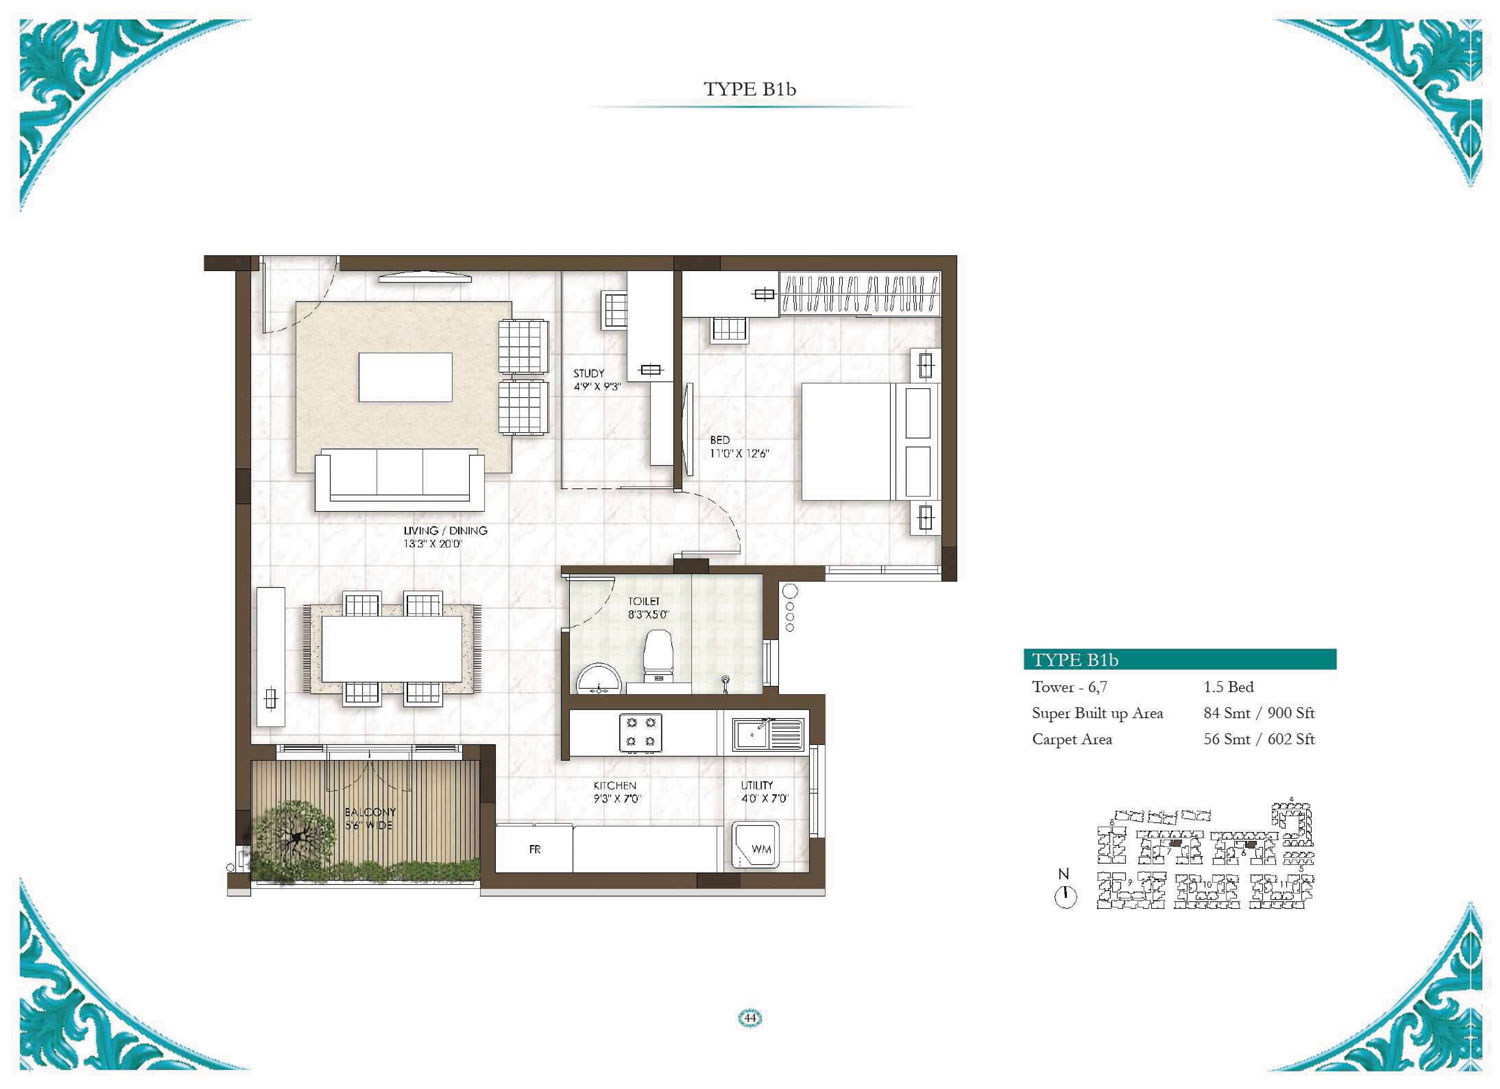 Type B1B - 1 Bed - 900 Sq Ft